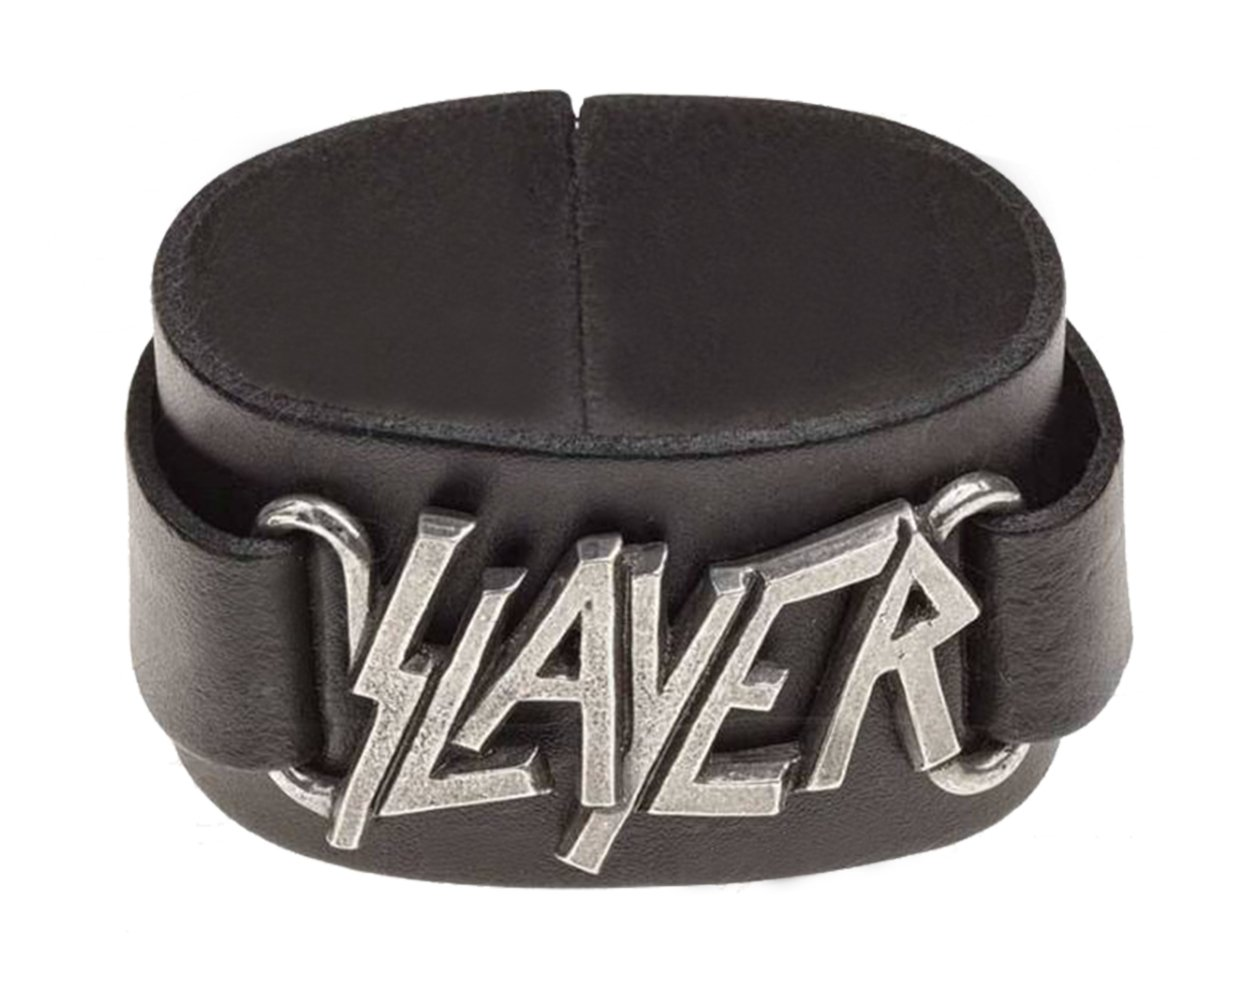 Slayer Wristband classic band Logo new Official Alchemy Black Leather Buckle